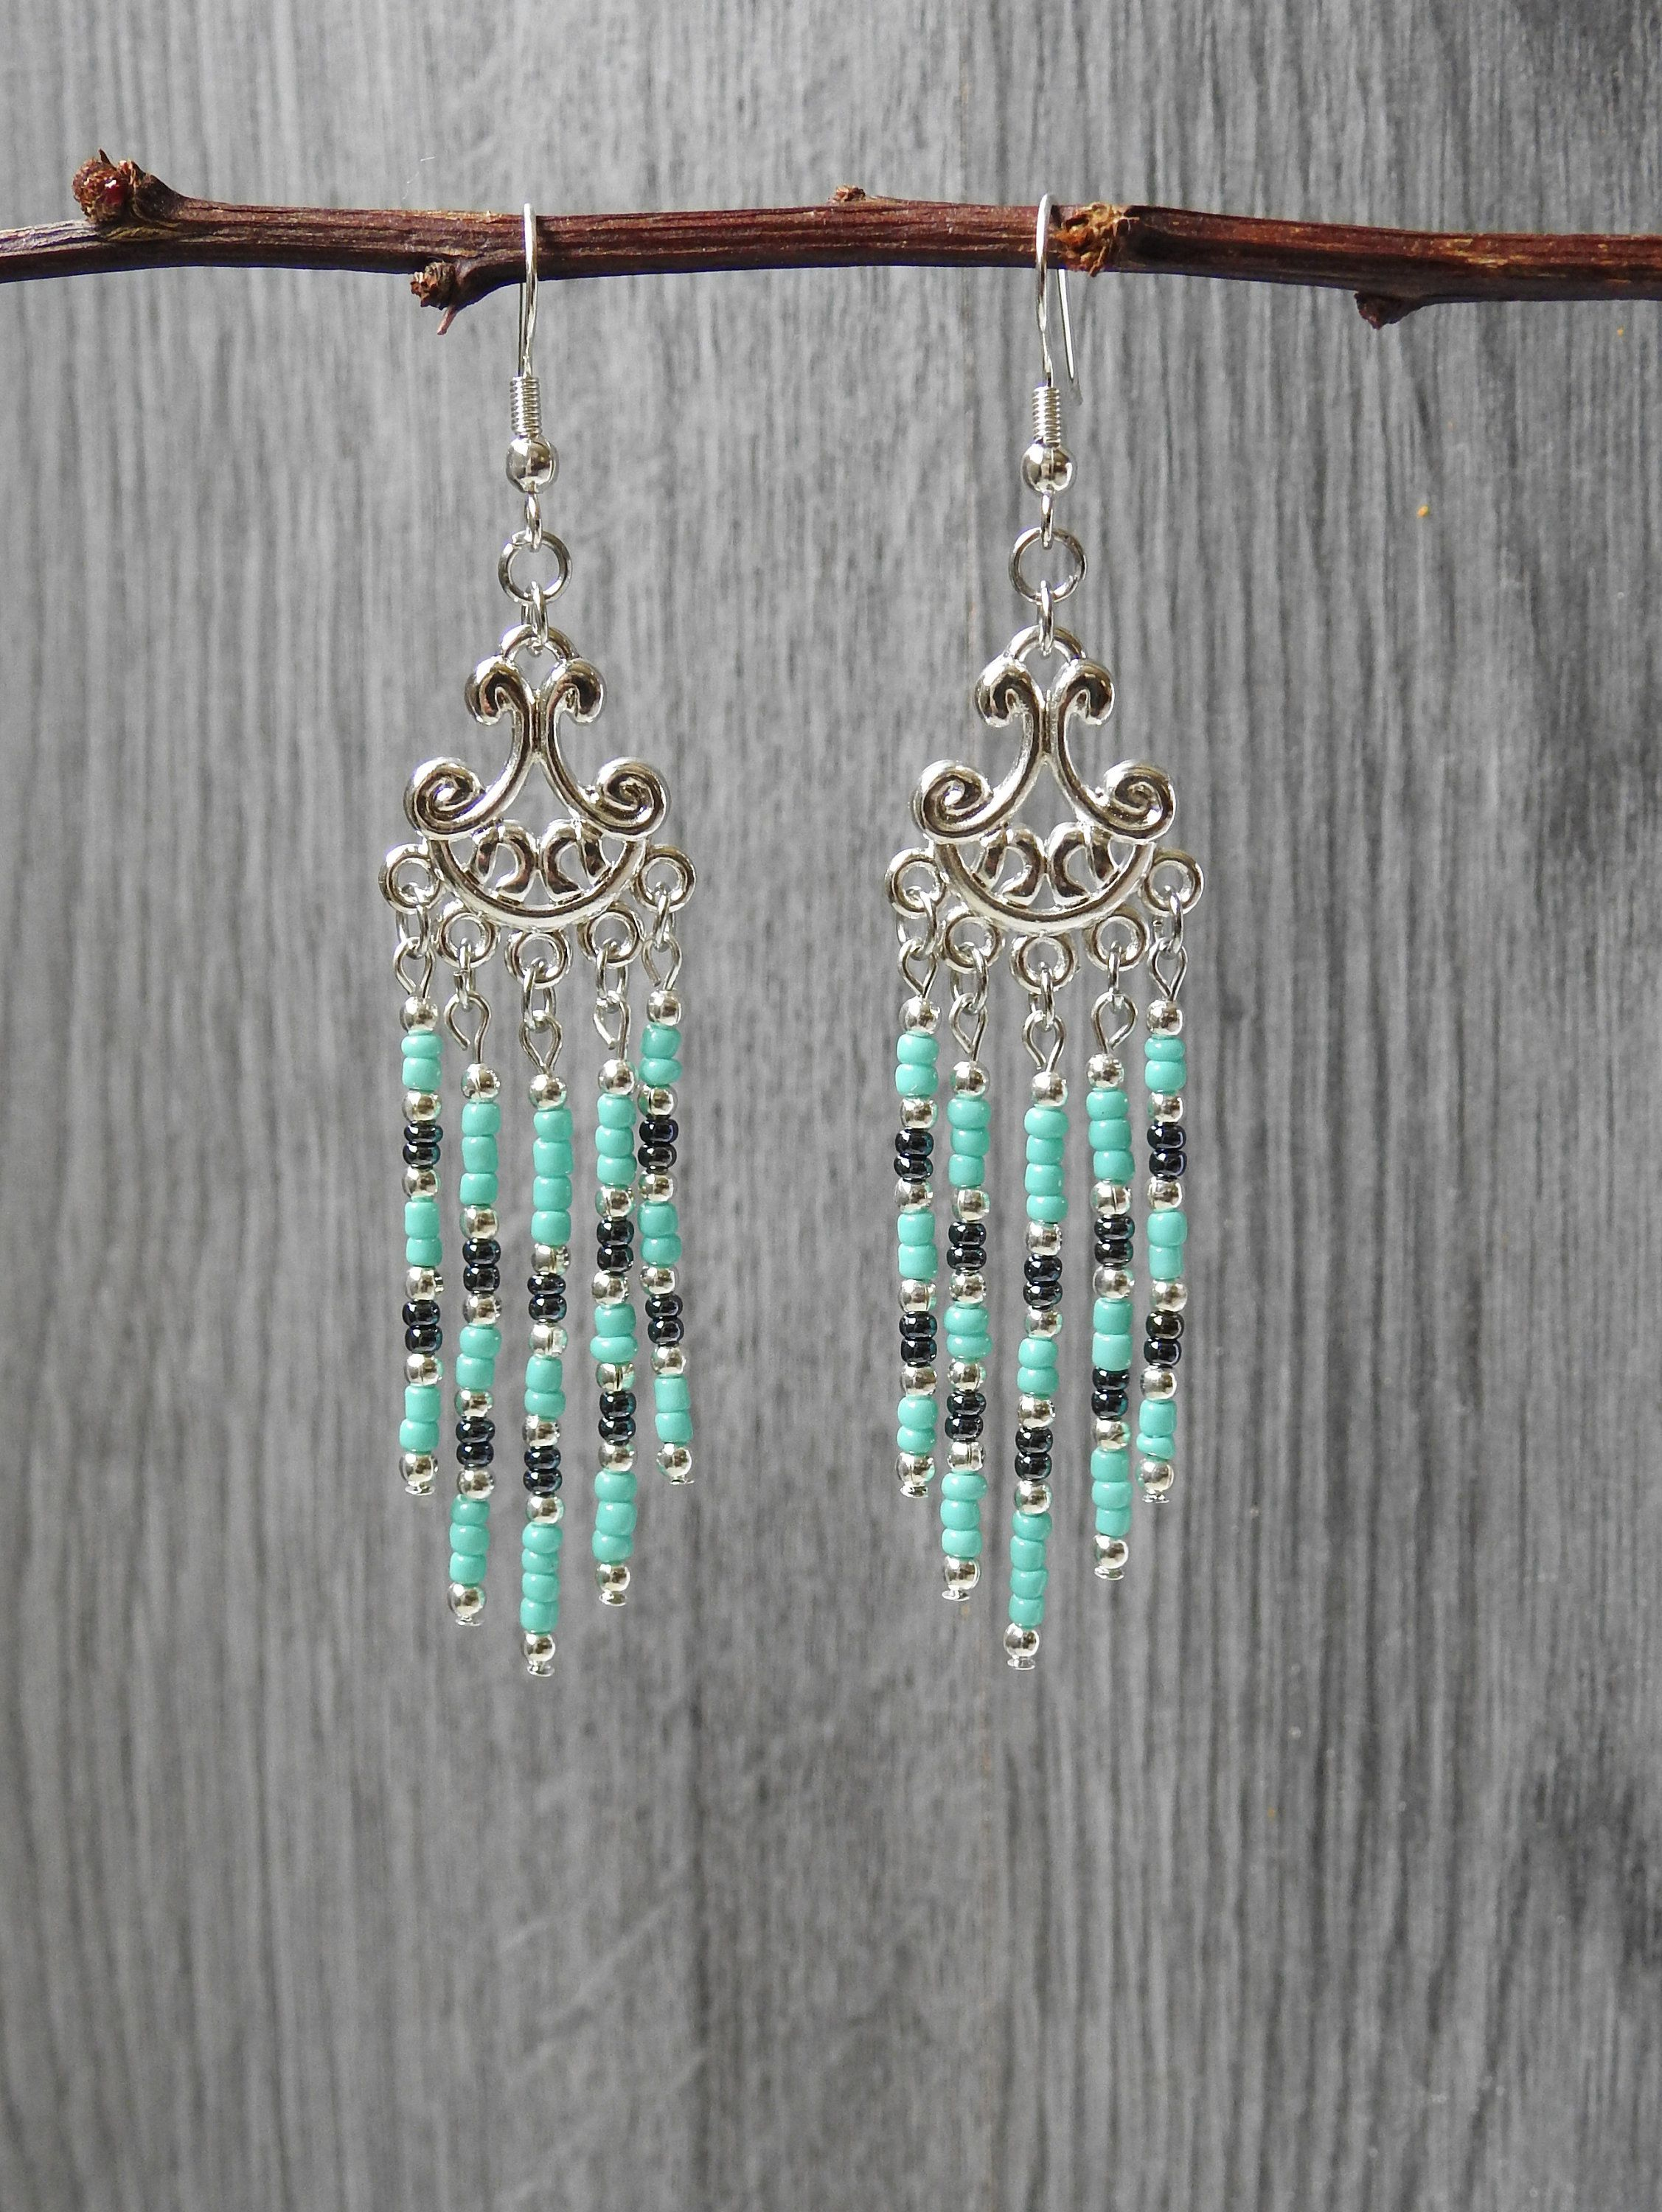 48e899838 Turquoise Chandelier Earrings - Southwestern Earrings - Chevron Earrings -  Turquoise Fringe Earrings - Cascade Earrings - Gift for Wife by  KayBejeweled on ...